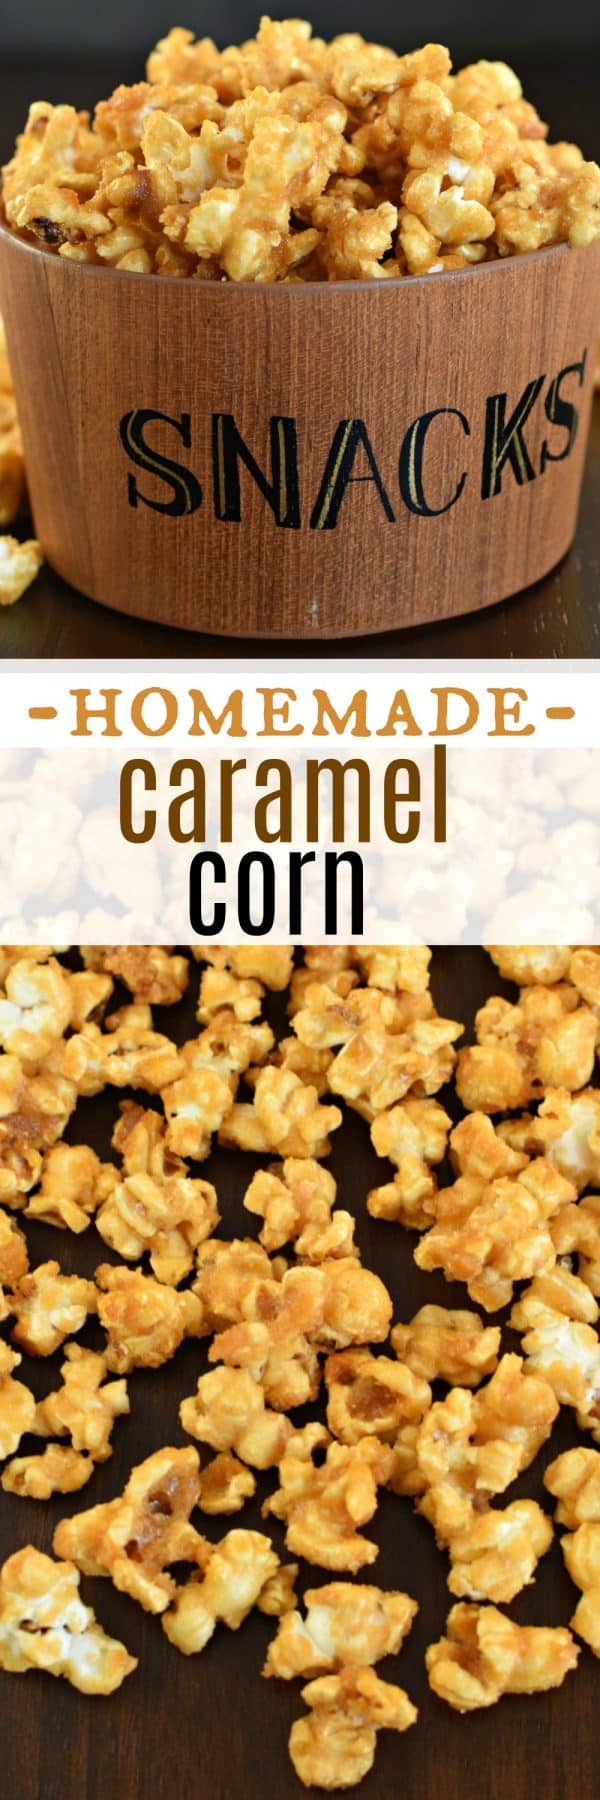 Sweet and crunchy, this Homemade Caramel Corn is the best ever, melt in your mouth treat! Perfect for your next movie night. #caramelcorn #homemade #snack